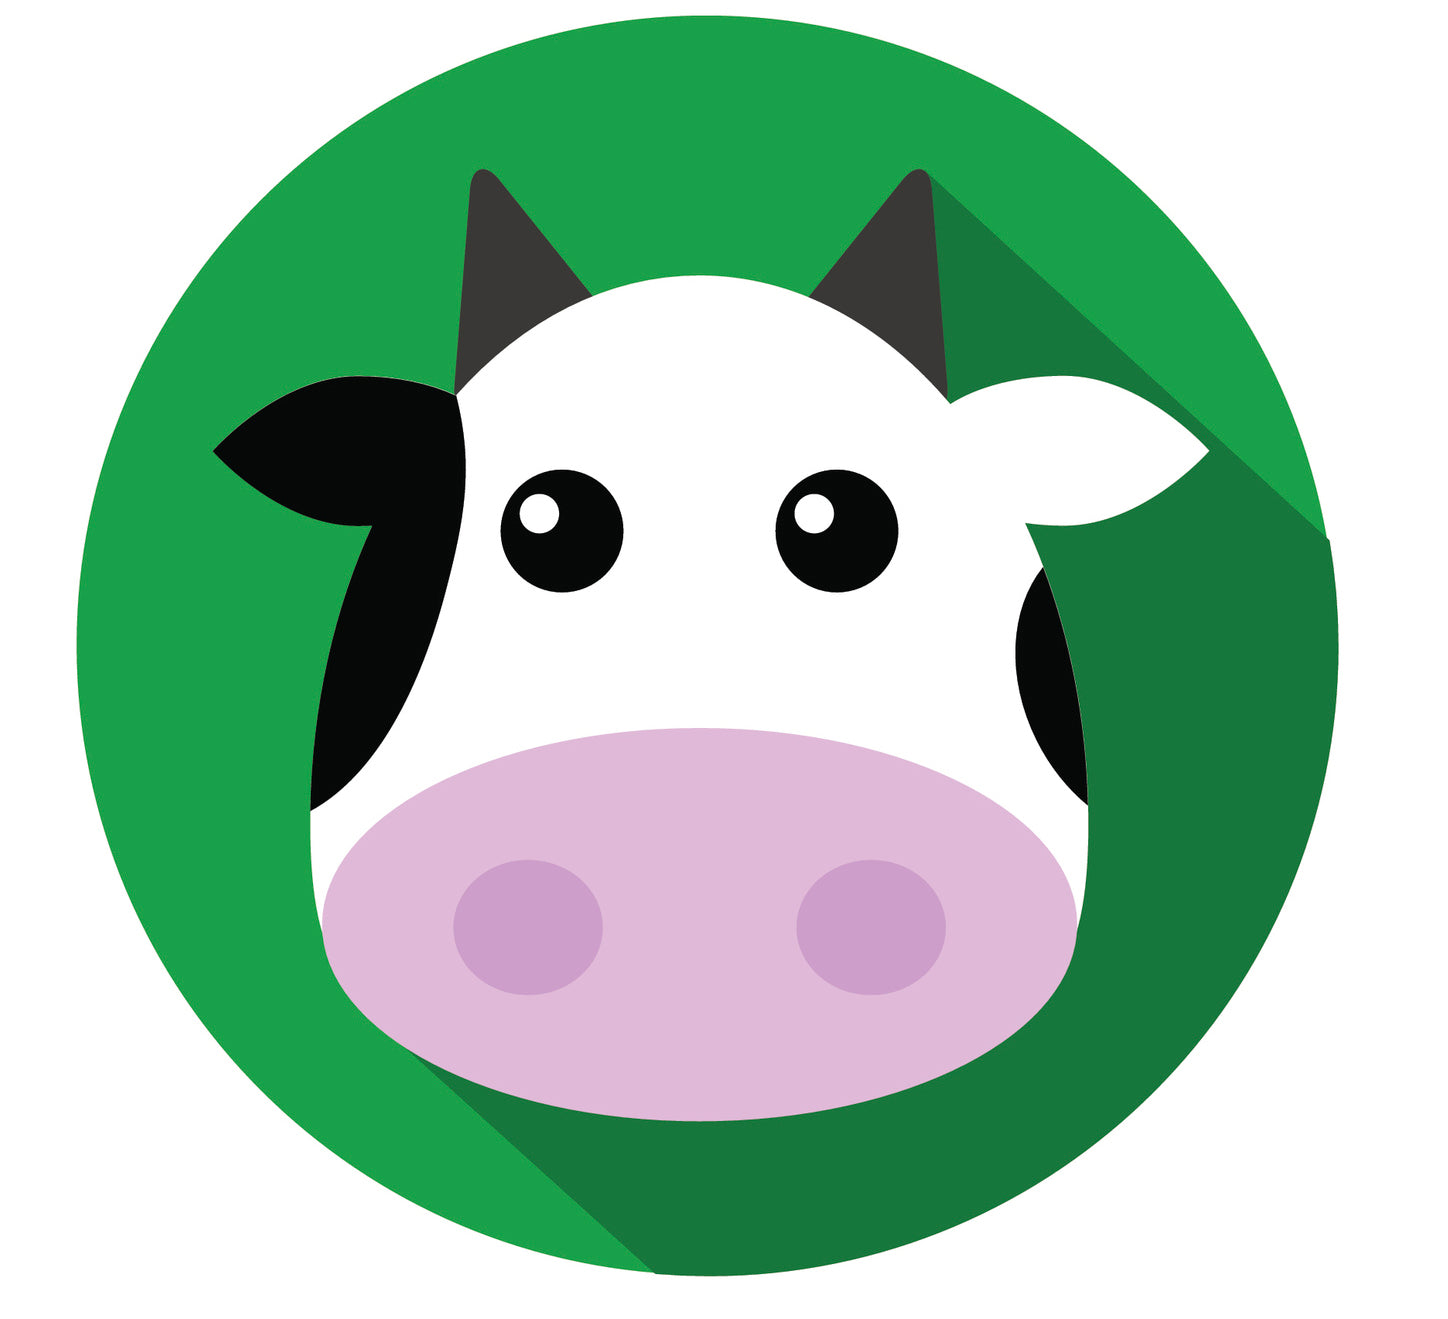 Cute Cartoon Milk Cow - Green Shadowed #2 Vinyl Decal Sticker